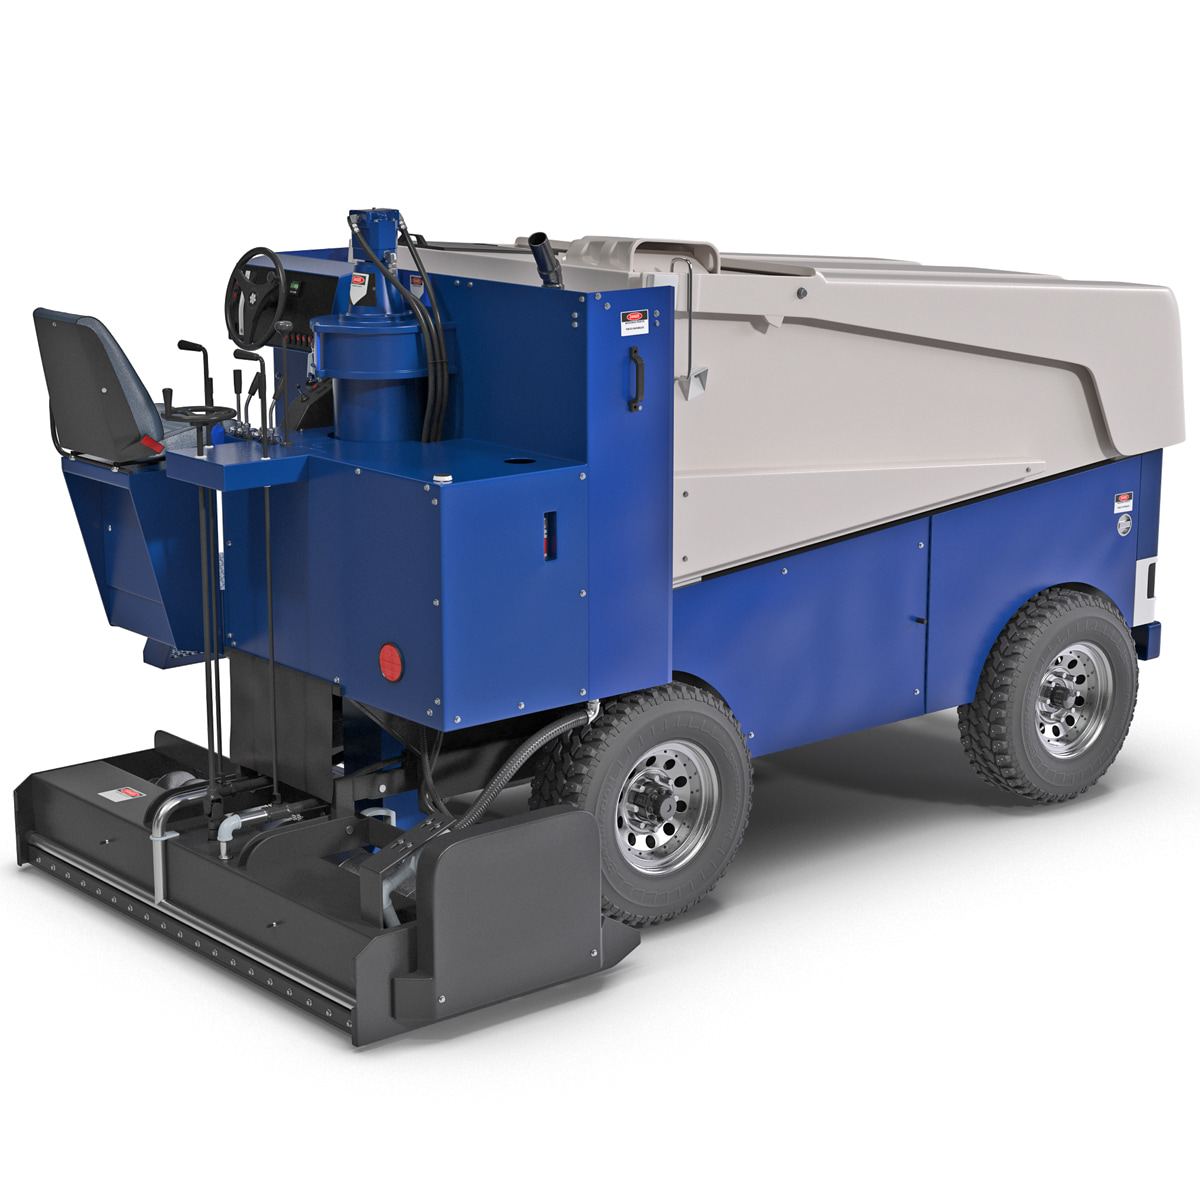 Searched 3d models for Ice Cleaning Truck Zamboni